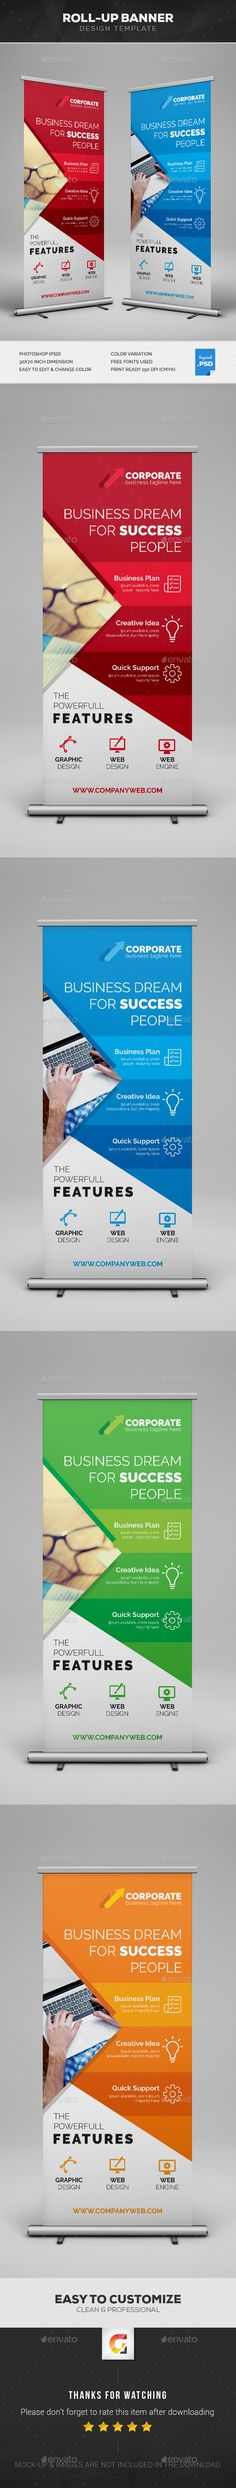 Corporate Roll-Up Banner Design Template PSD - Graphic Templates Search Engine Invoice Template, Banner Template, Flyer Template, Templates, Roll Up Design, Rollup Banner, Cool Business Cards, Email Design, Banner Design